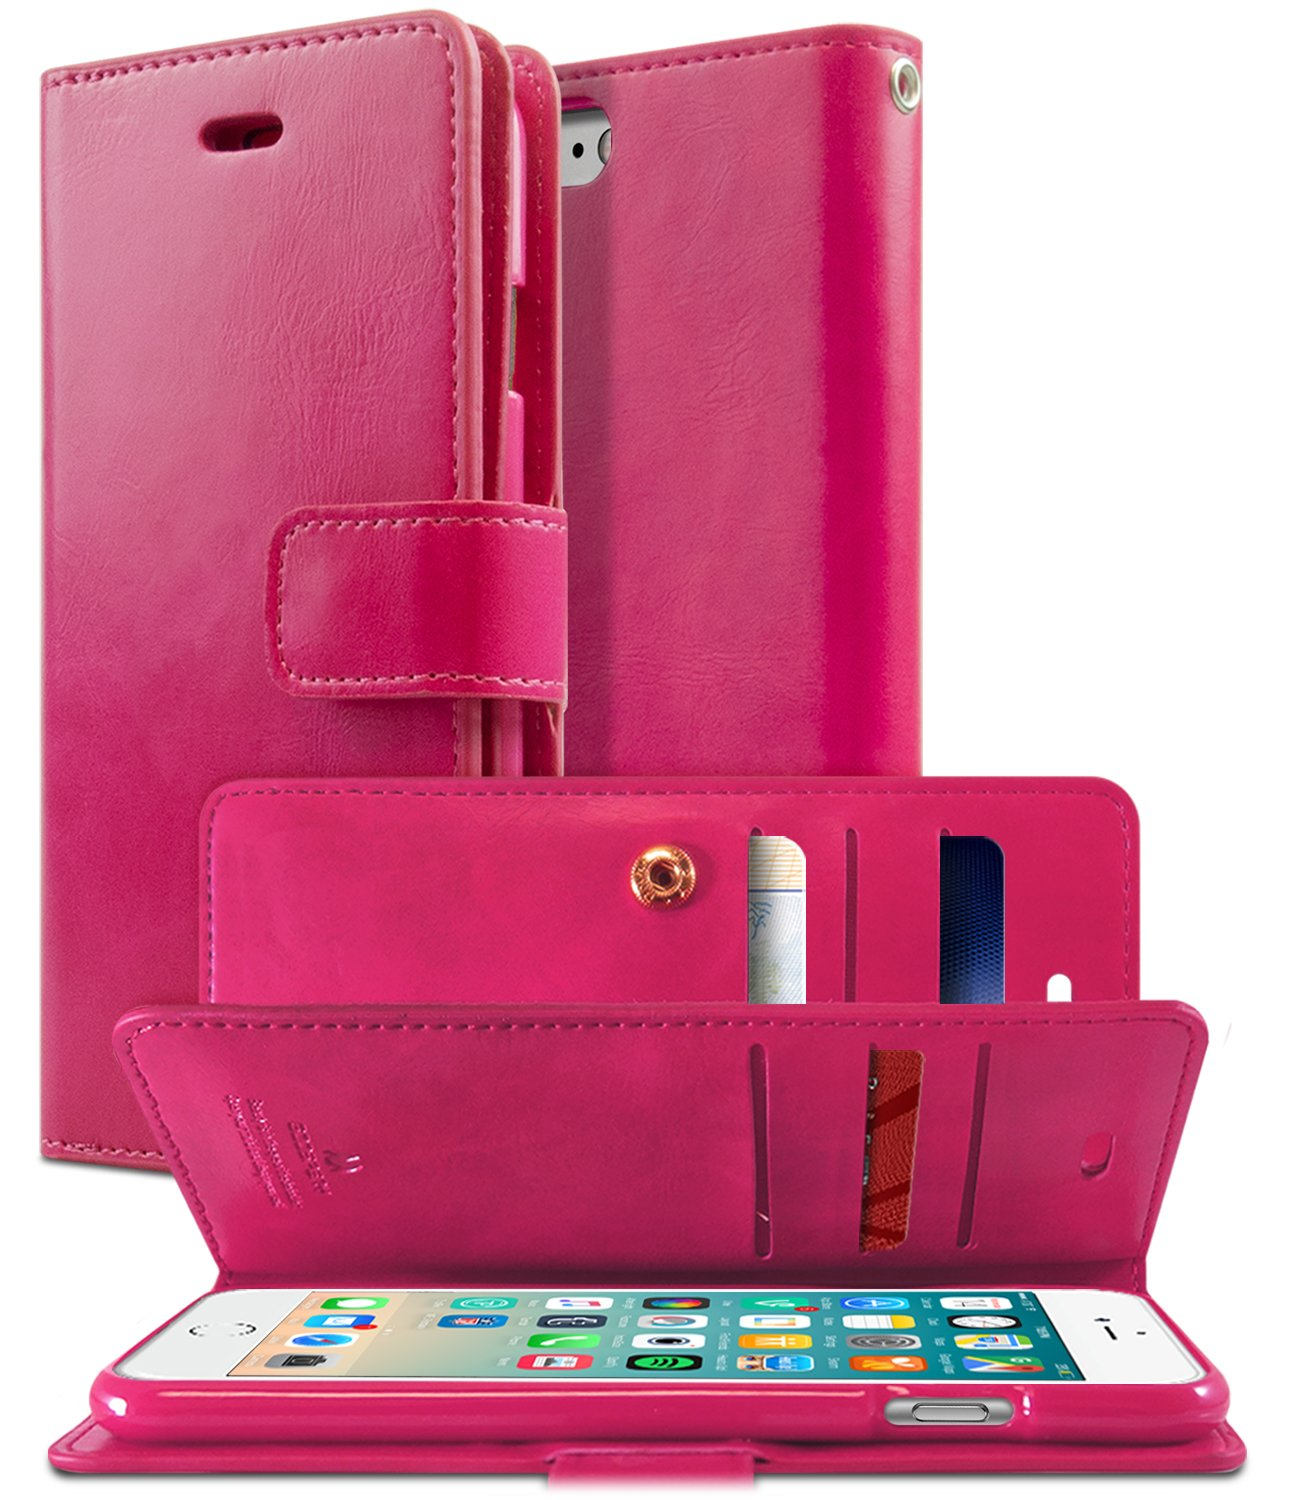 Goospery Iphone 8 Case 7 Extra Card Plus Blue Moon Flip Hotpink Cash Slots Mansoor Diary Double Sided Wallet Pu Leather Tpu Casing Drop